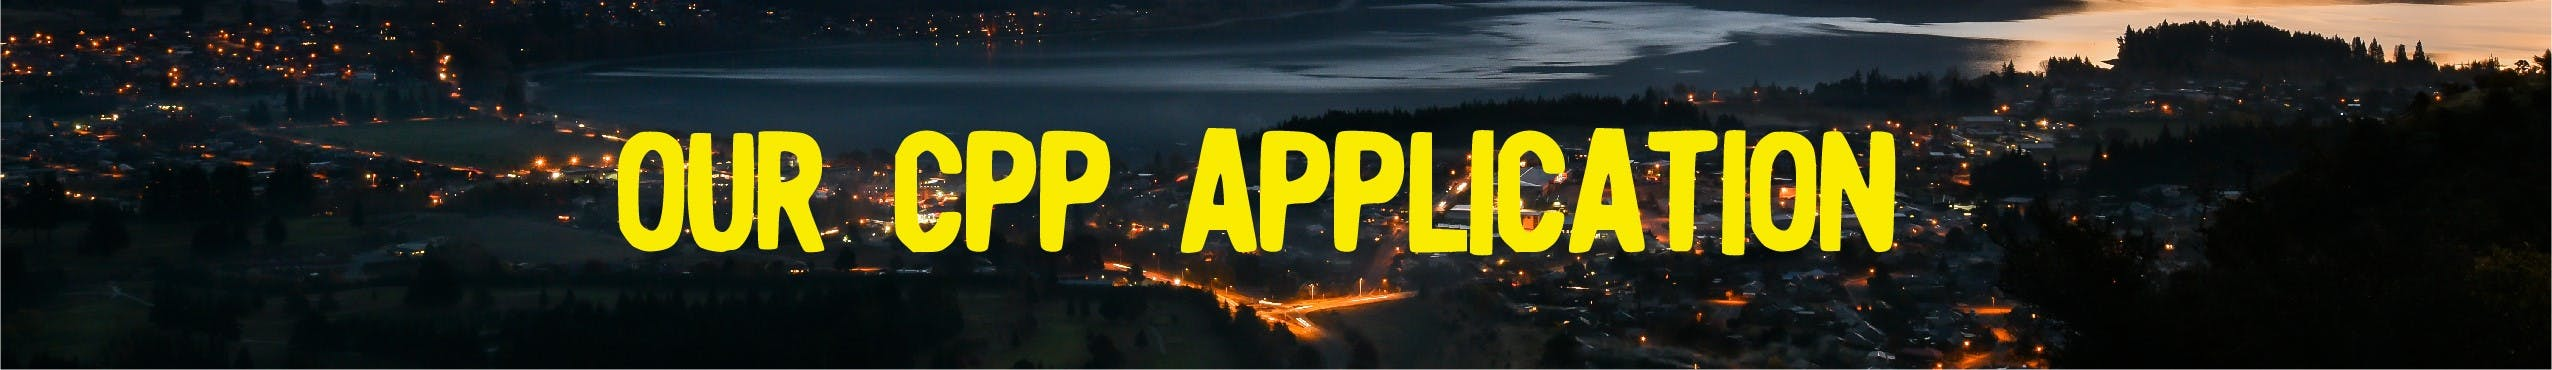 Our CPP Application